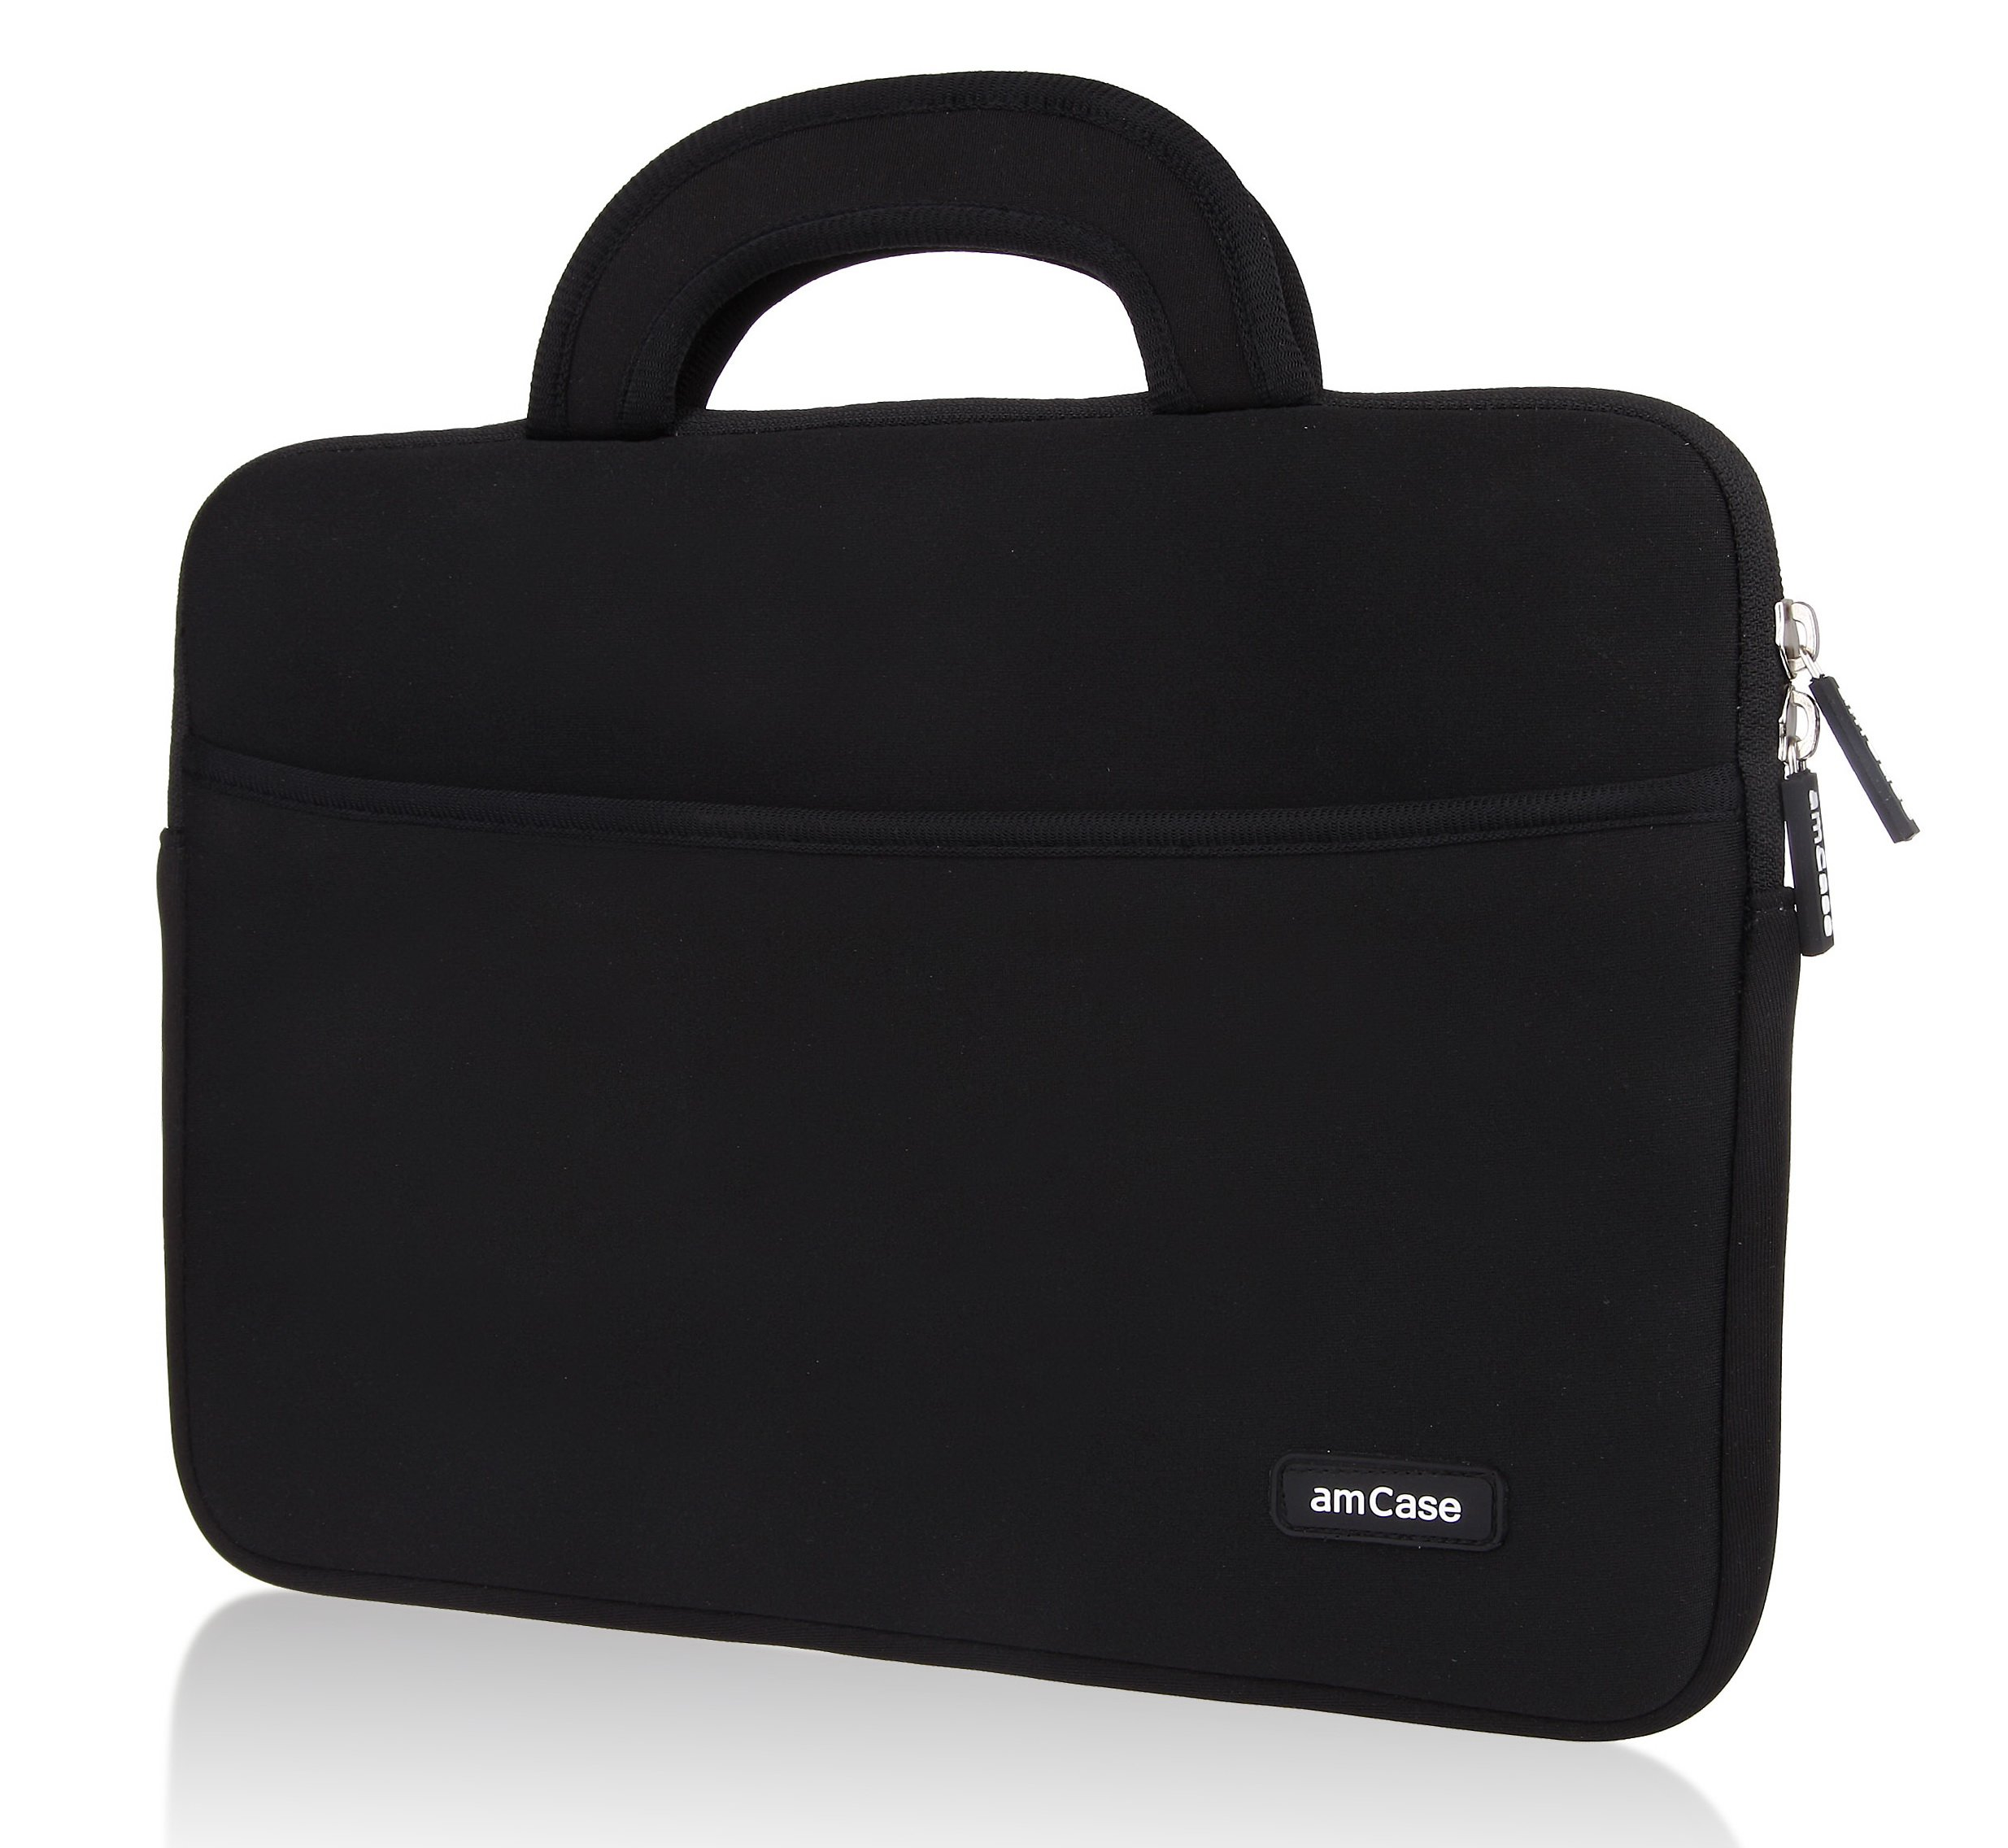 amCase Chromebook Case-11.6 to 12 inch Neoprene Travel Sleeve with Handle-Black by amCase